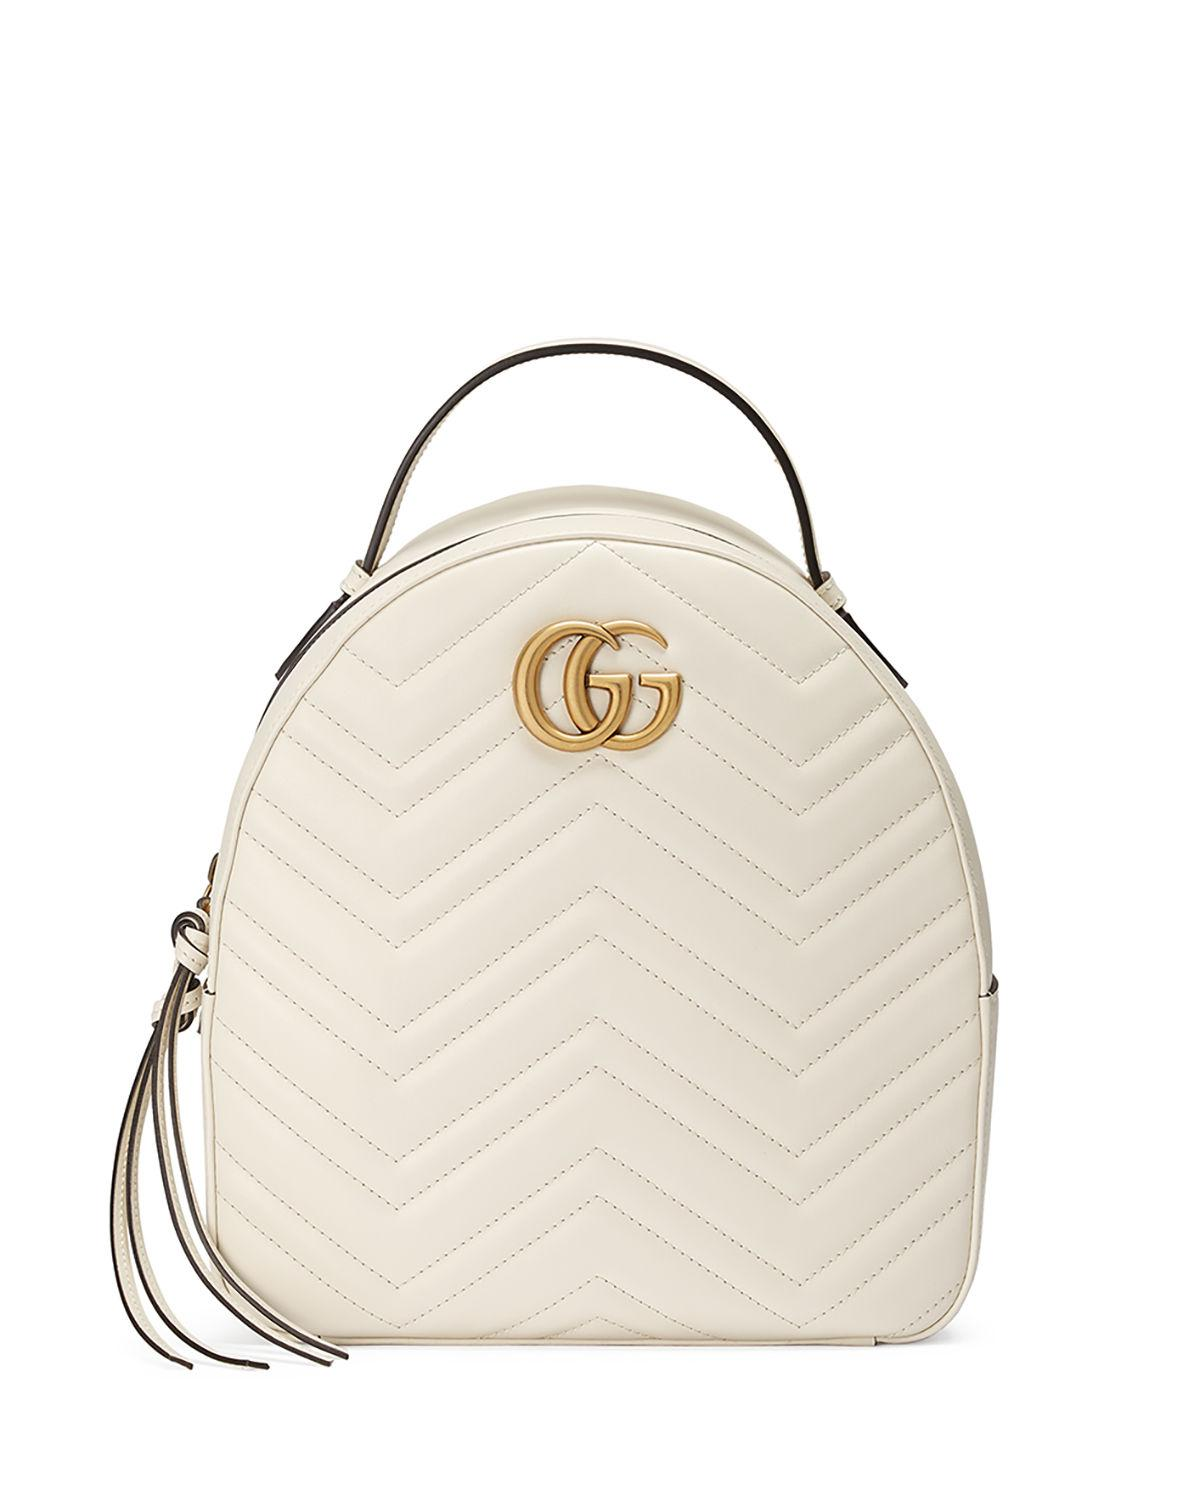 Lyst - Gucci Gg Marmont Quilted Leather Backpack in White 9e9ea3d496956